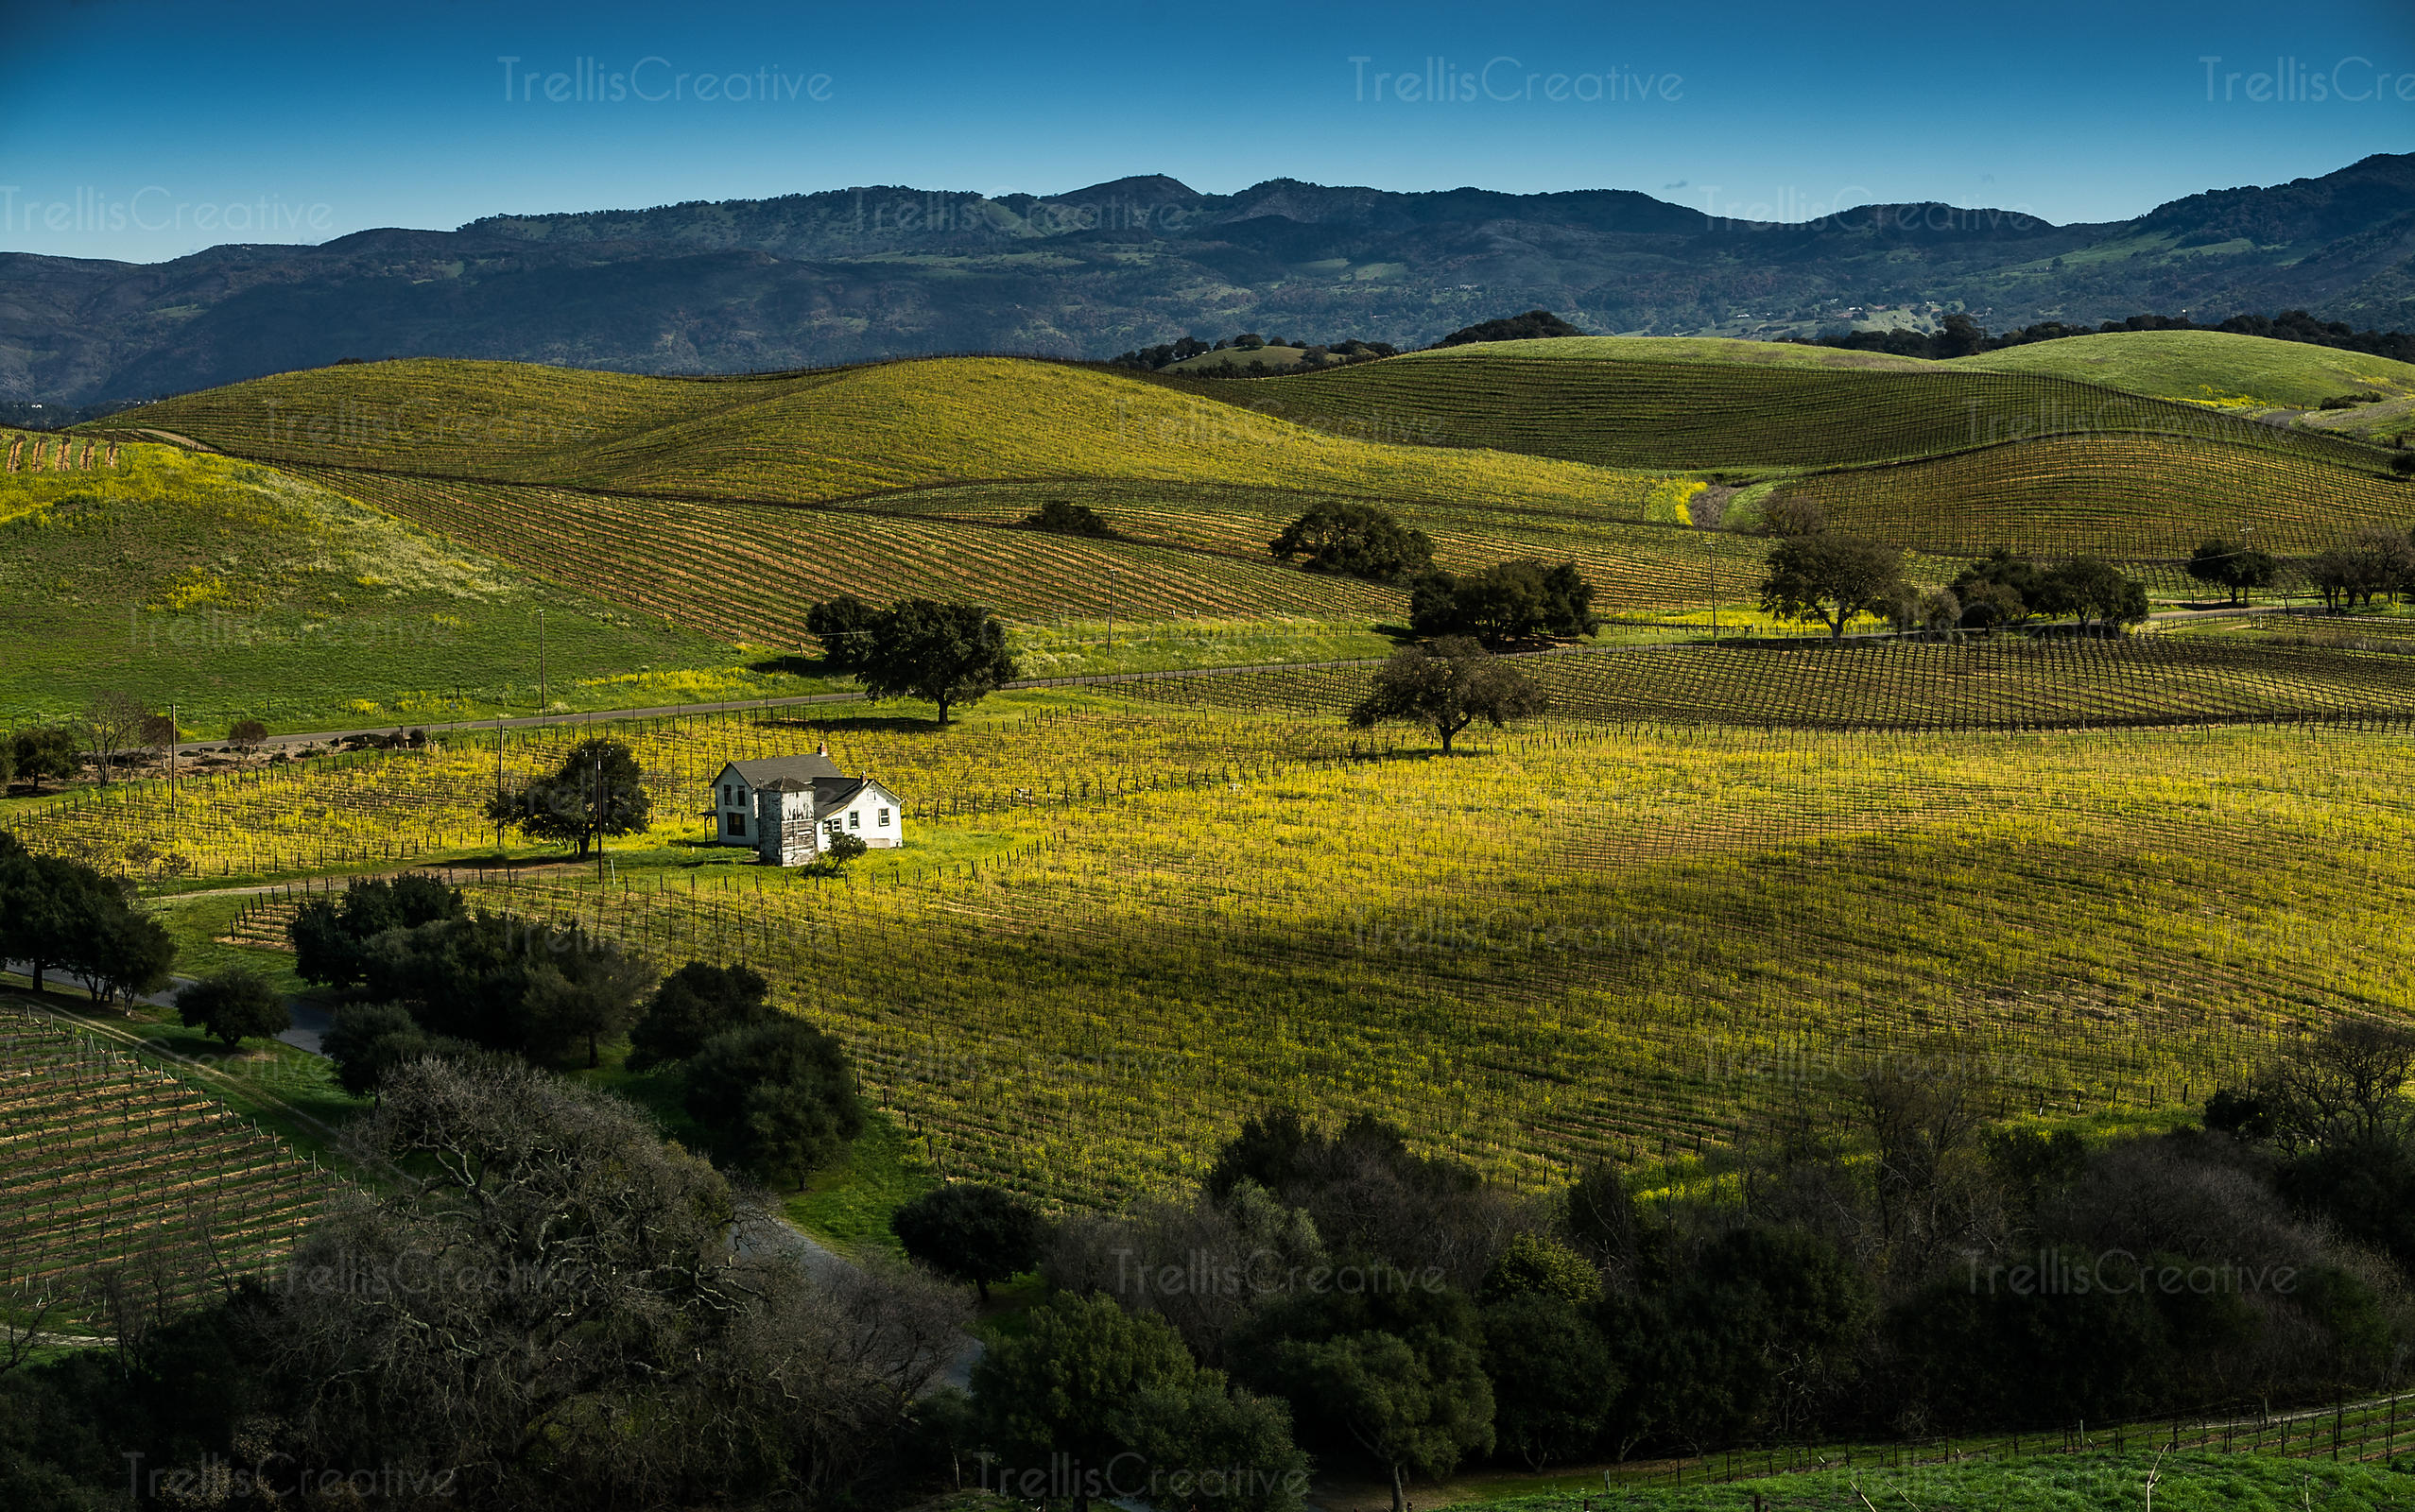 Undulating landscape, wine region, napa Valley, Napa County, California, USA.